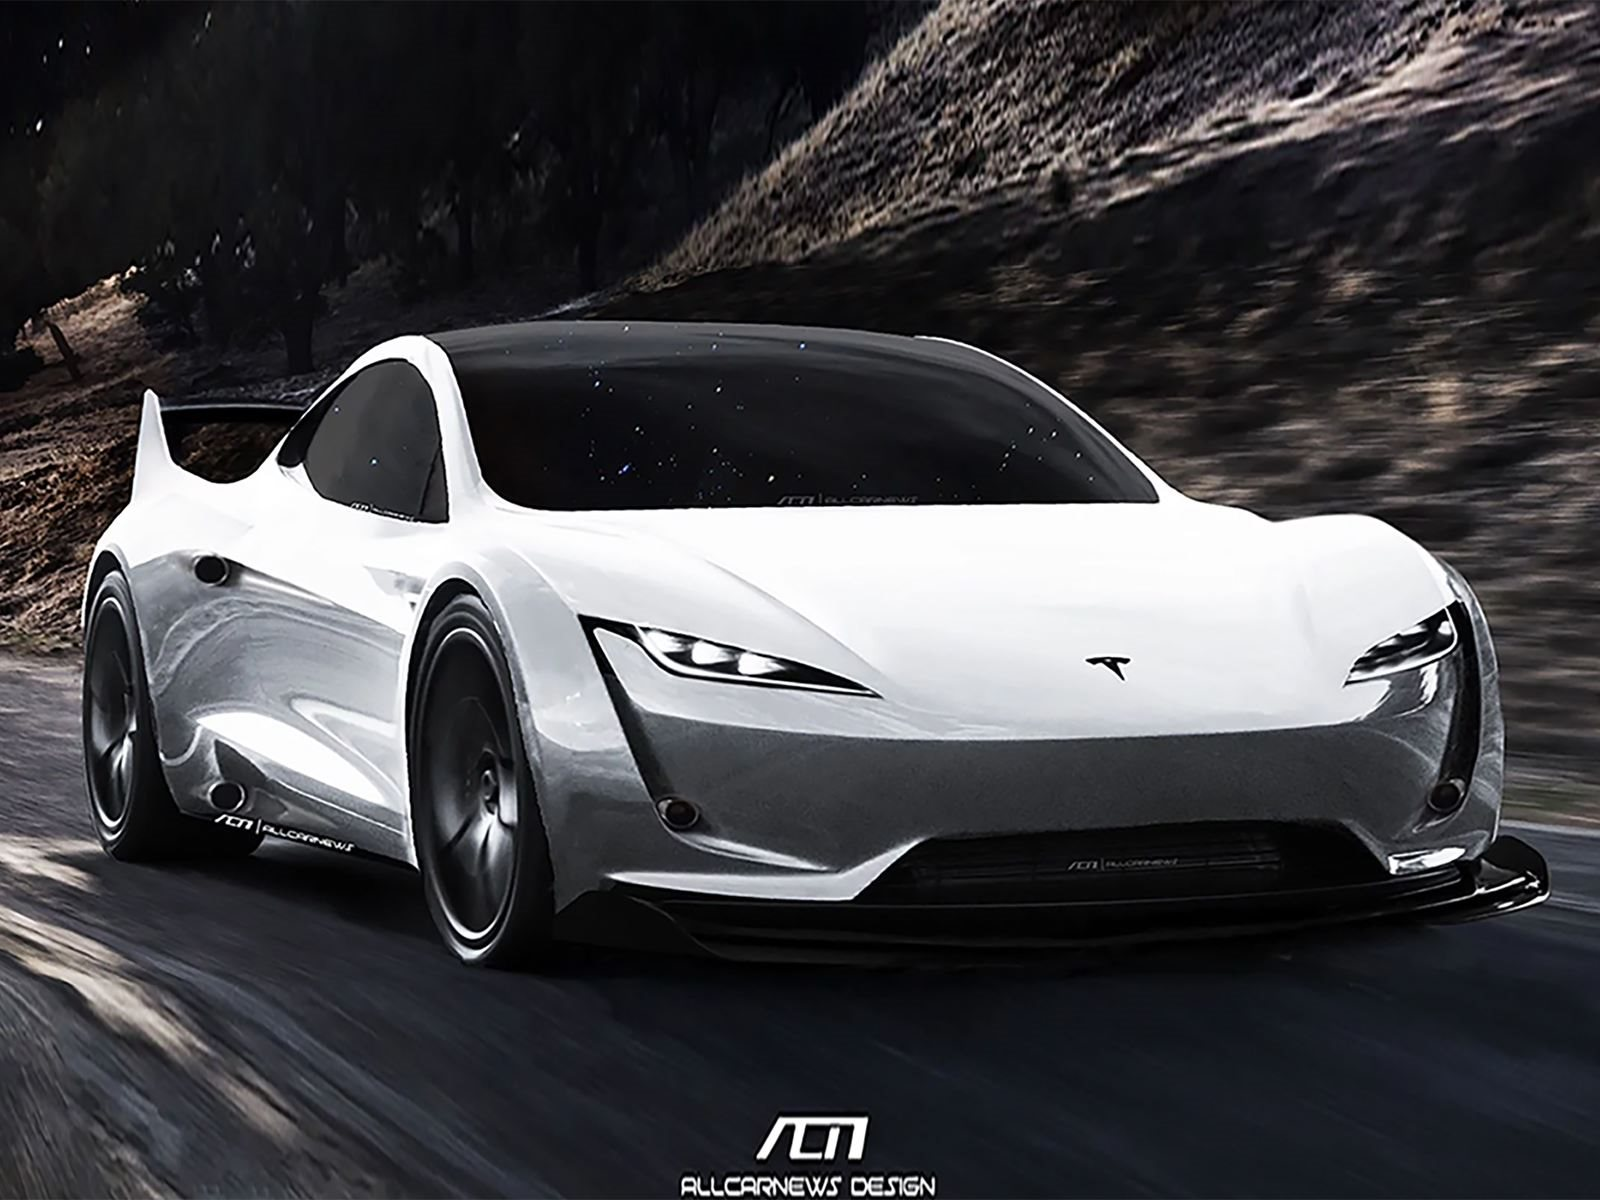 Will The Tesla Roadster Spacex Look As Extreme As This